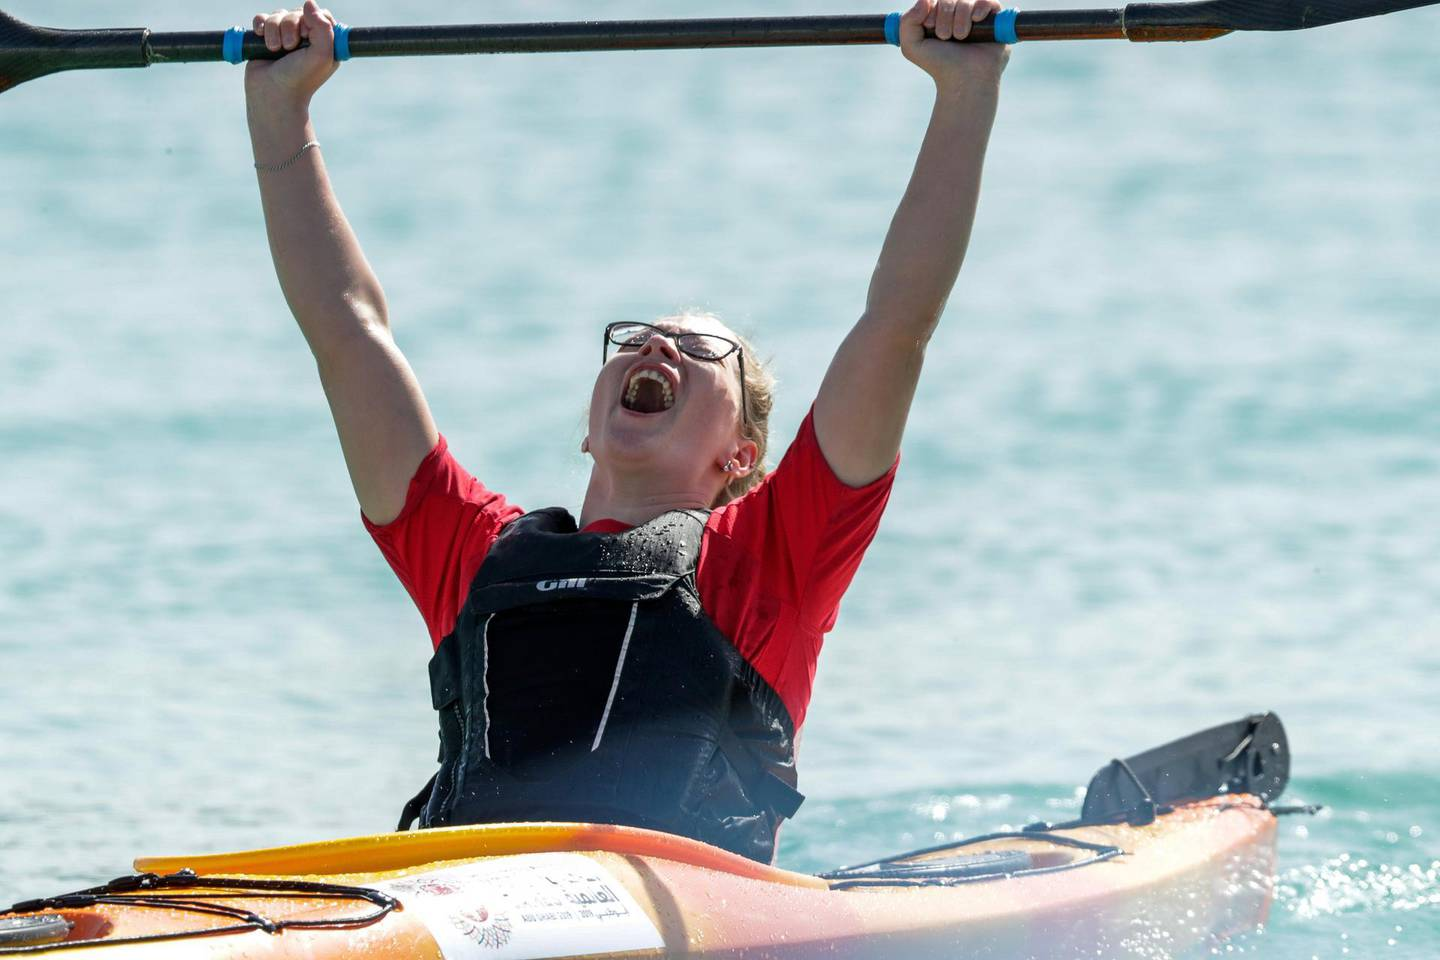 Abu Dhabi, March 18, 2019.  Special Olympics World Games Abu Dhabi 2019. Kayaking at the Marina Yacht club area. -- Irina Egorova takes the win in the first round of Women's Kayaking.Victor Besa/The National